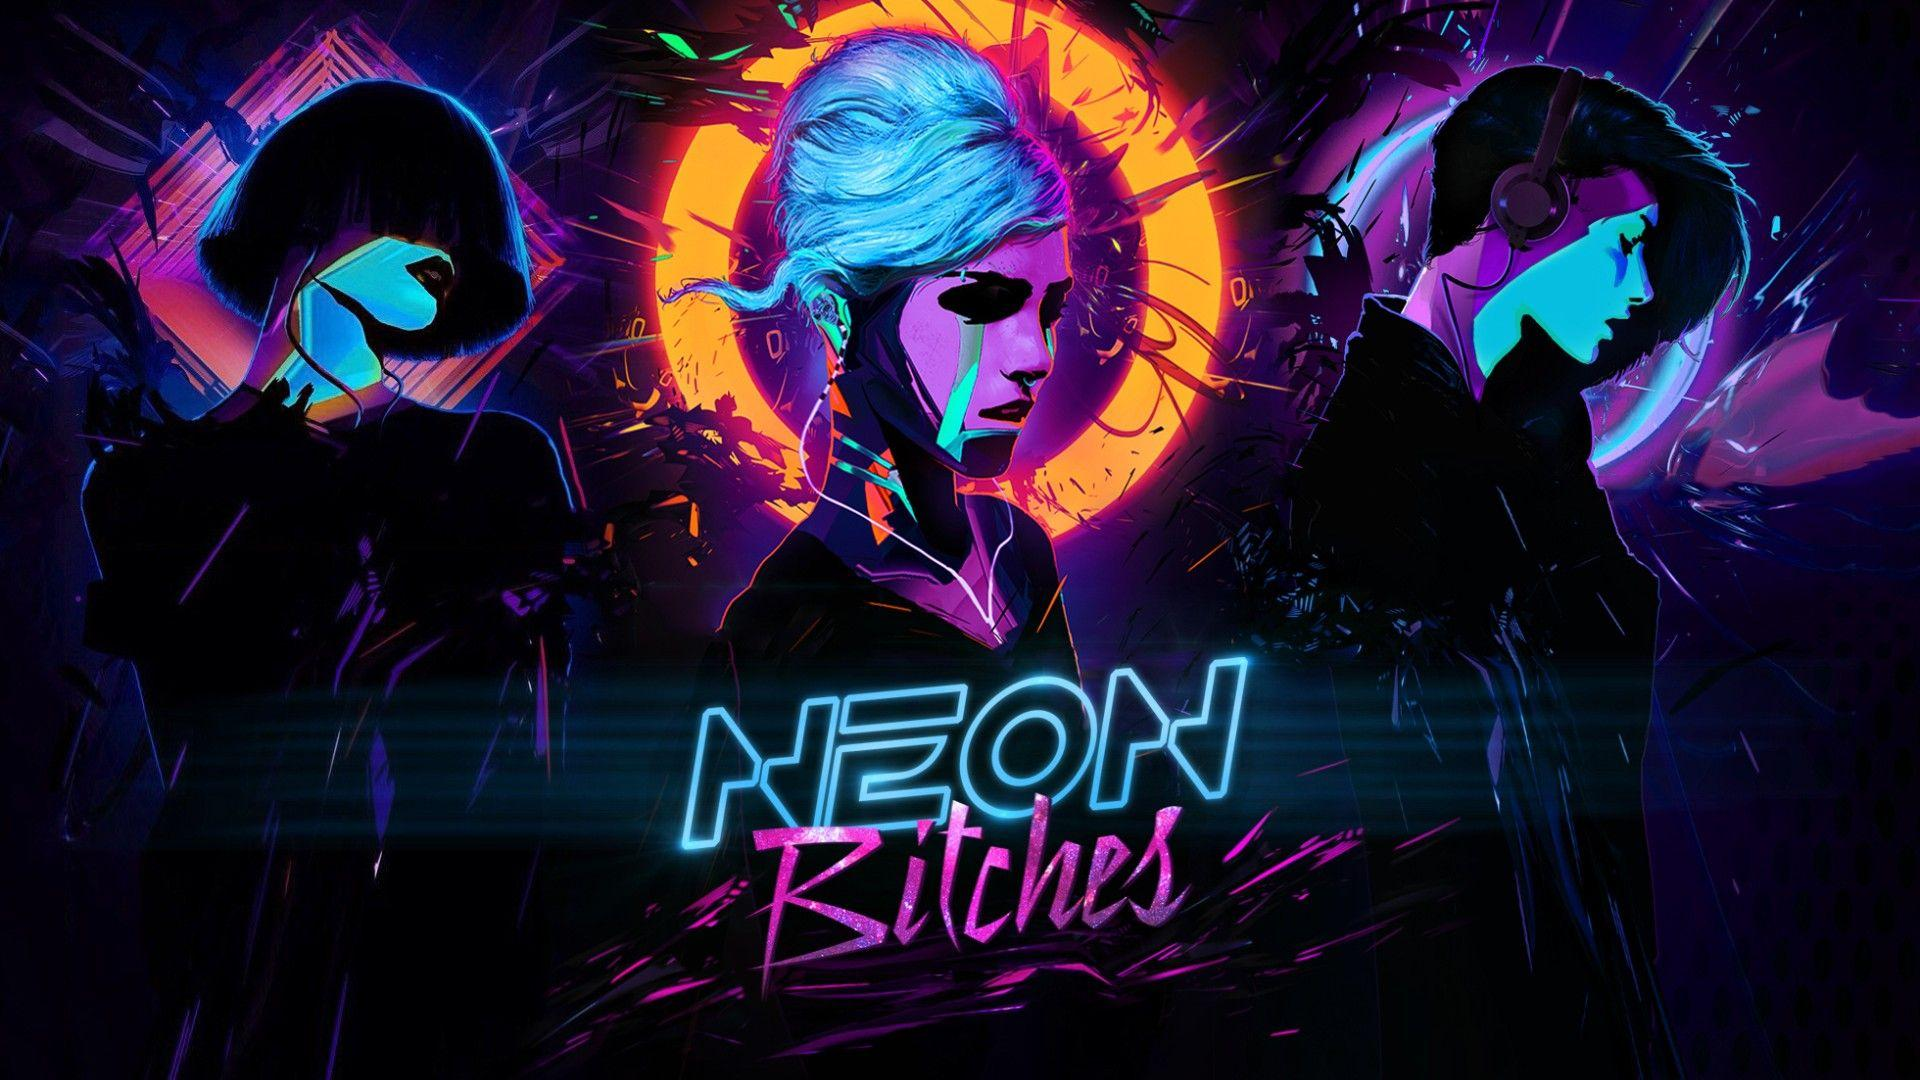 Download wallpapers neon, bitches, synthwave, bitch, girl, music